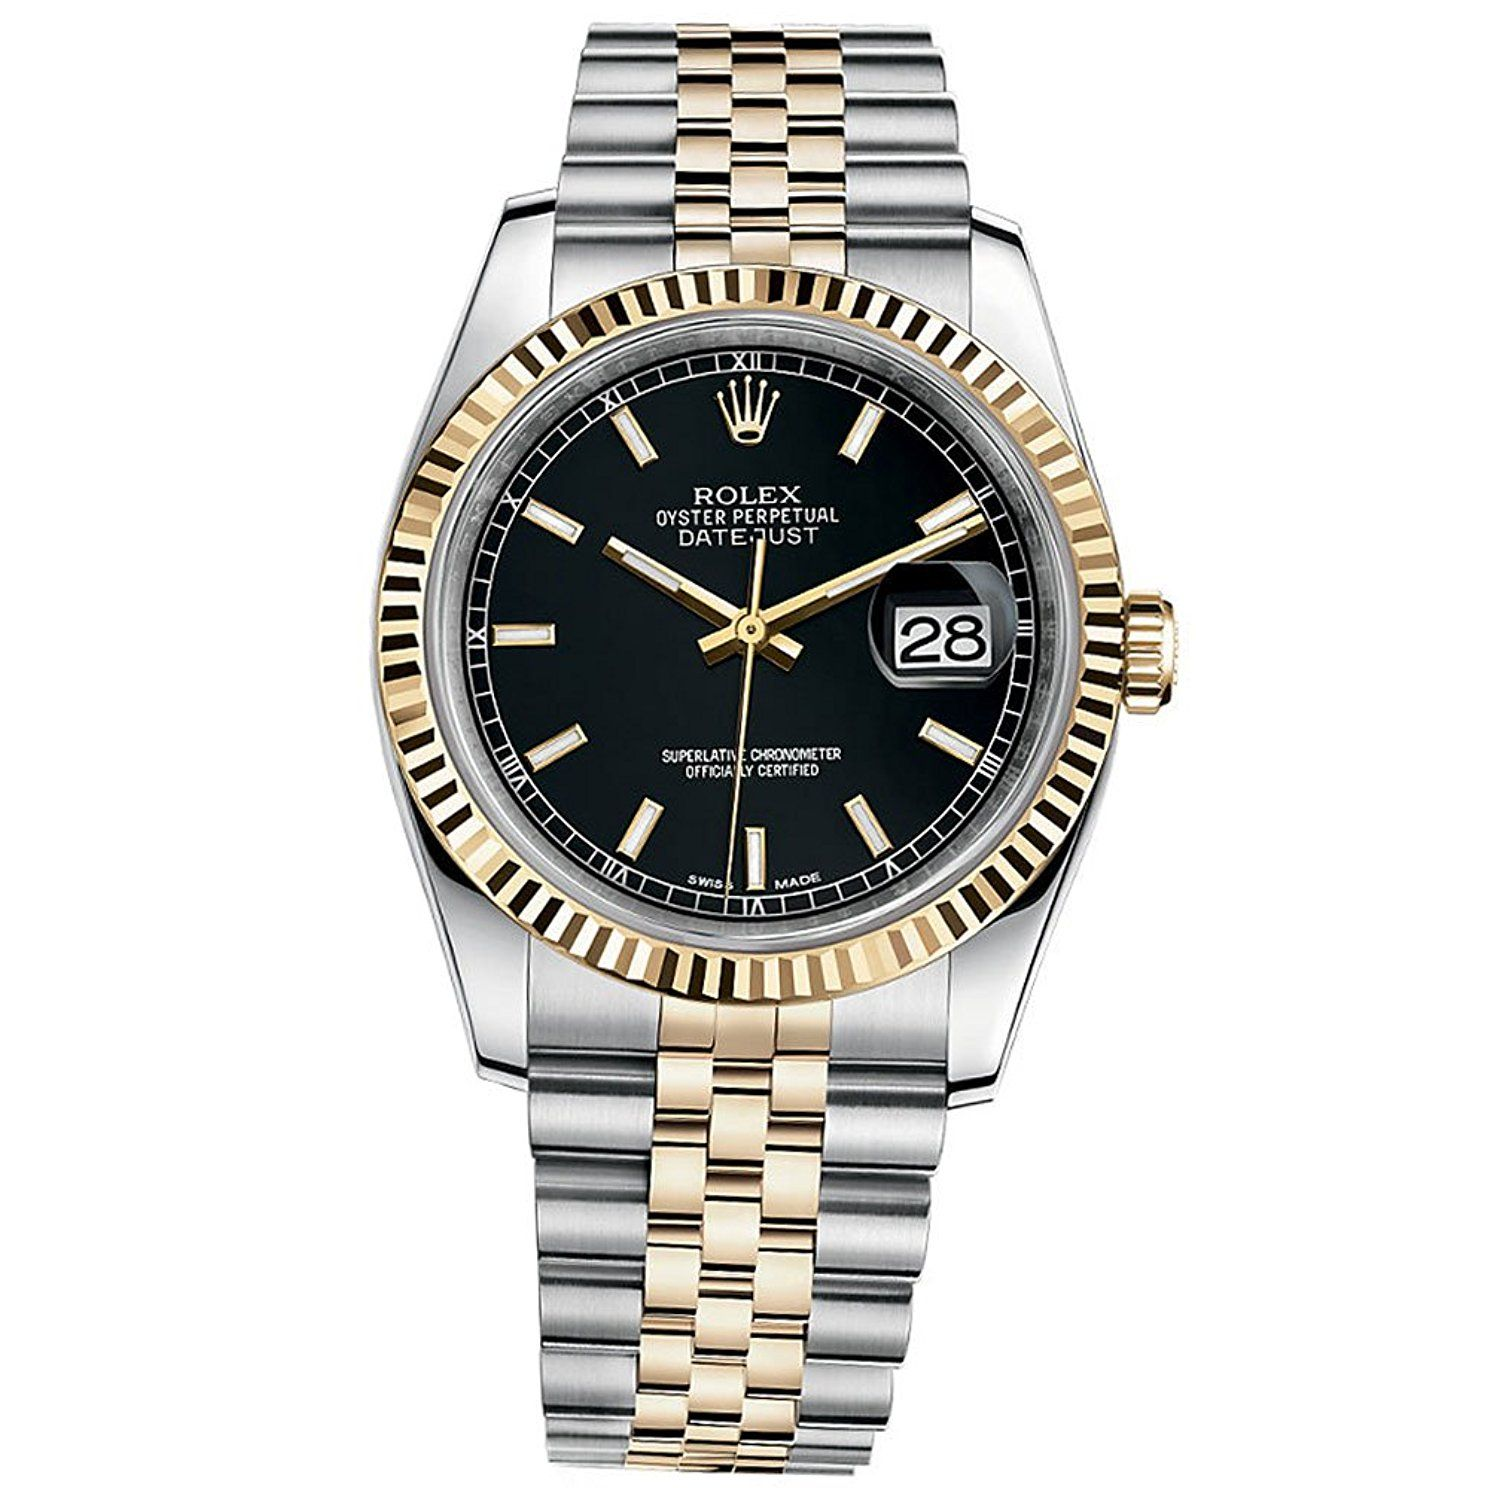 Rolex Datejust 36 Steel Yellow Gold Watch Black Dial 116233 Special Product Just For You See It Now Rolex Datejust Women Rolex Womens Watches